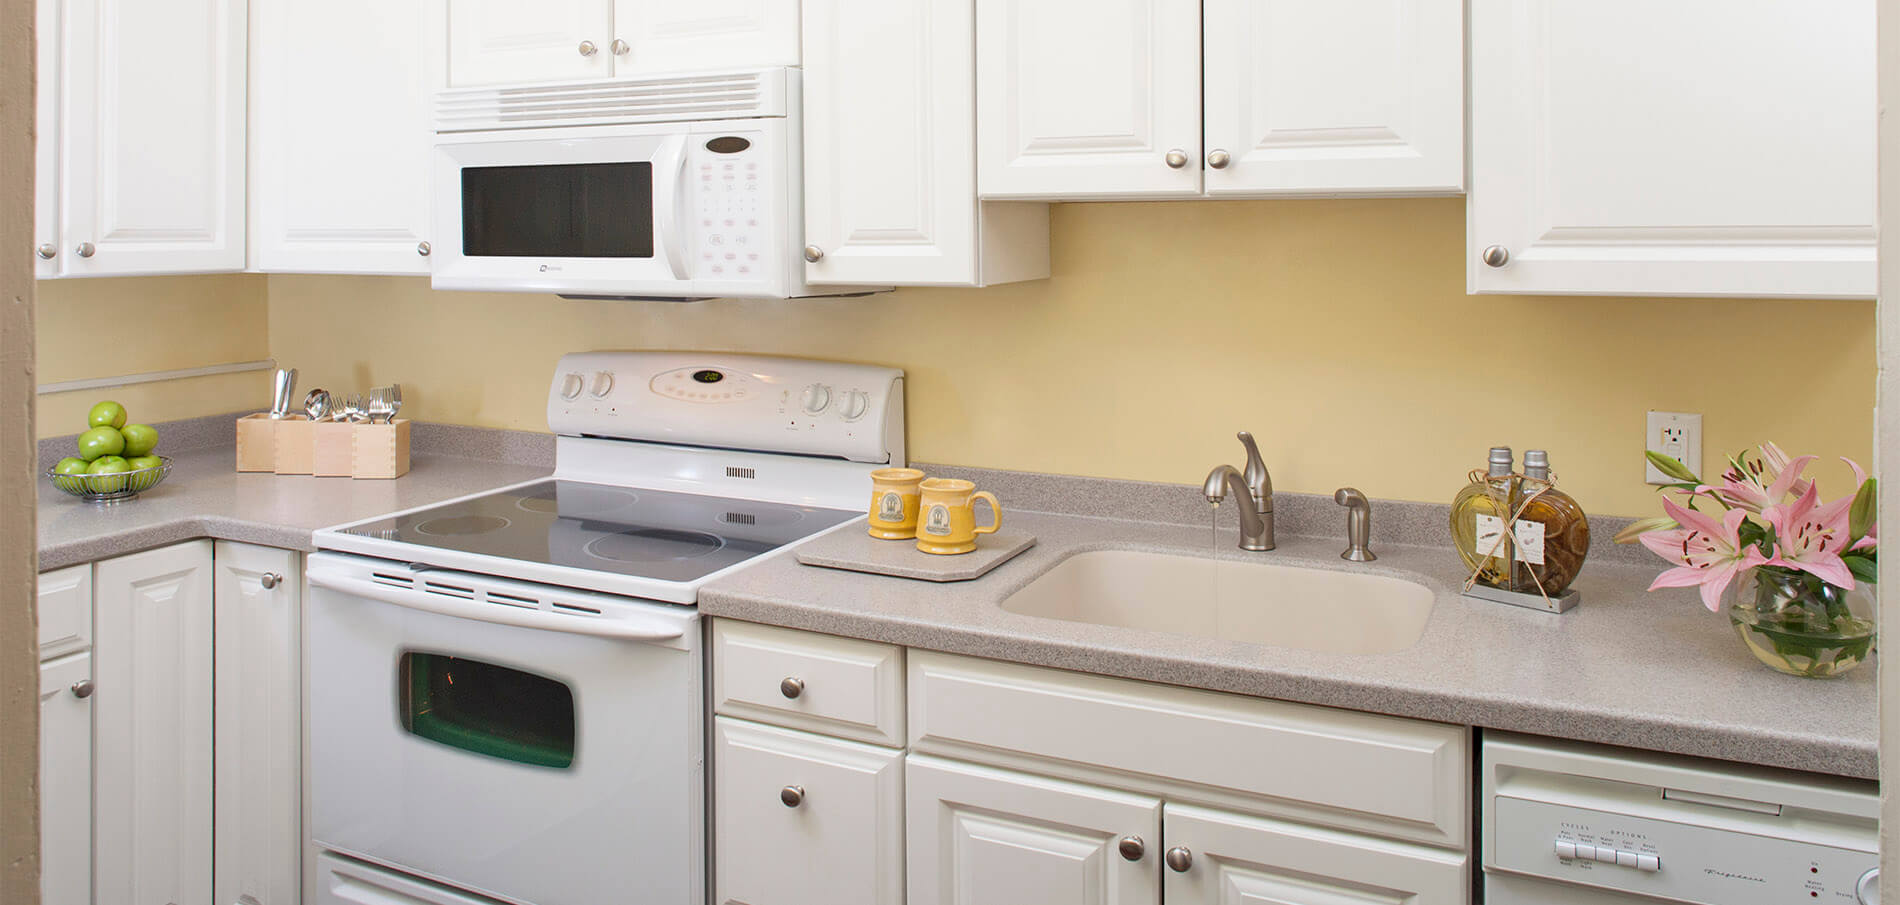 kitchen with white cabinets, soft gray granite countertops, white stove and microwave with soft yellow walls